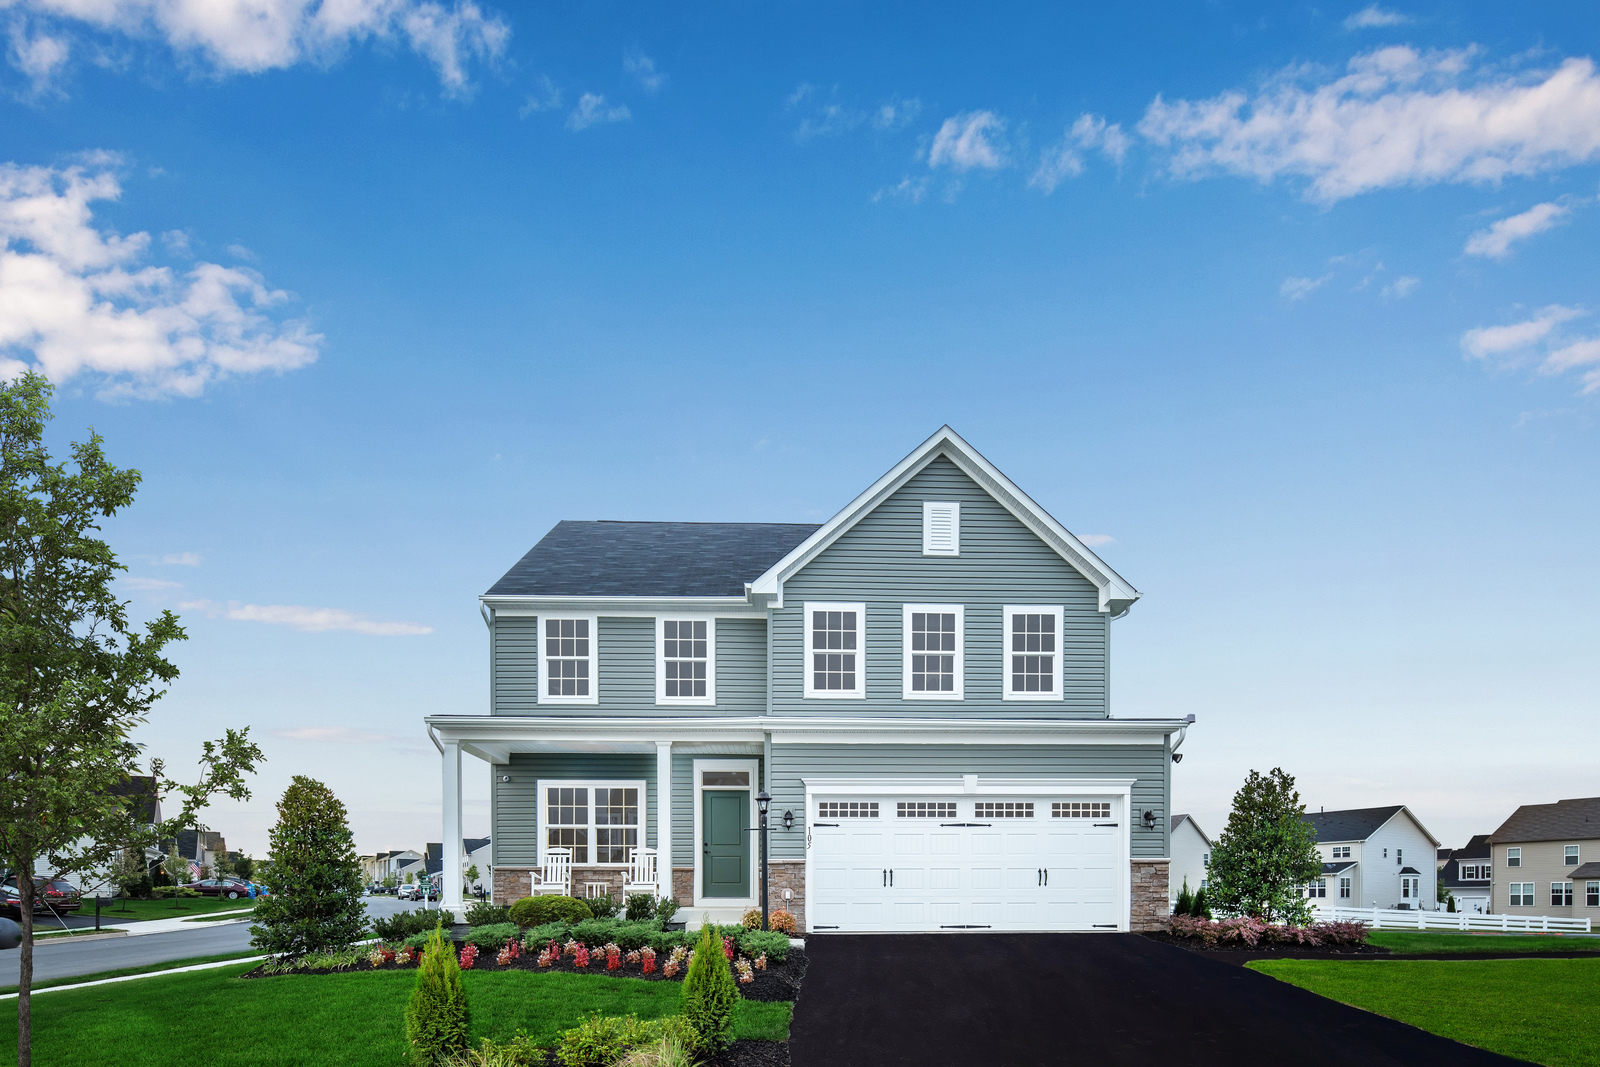 New Homes For Sale At Chestnut Hill Preserve Single Family Homes